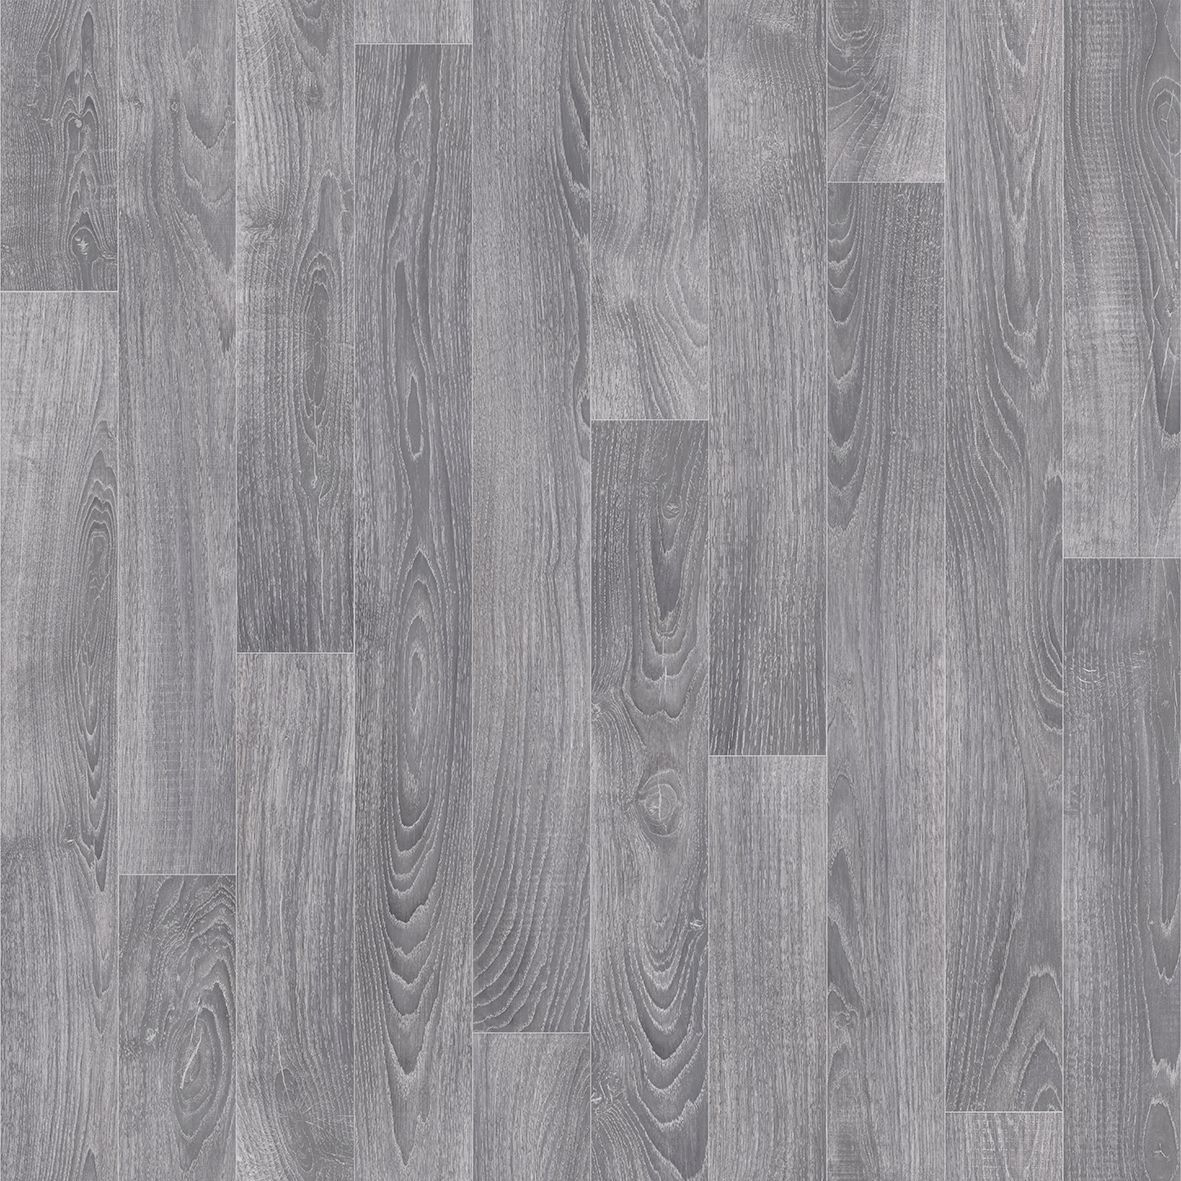 Grey Kitchen Lino: Grey Oak Effect Vinyl Flooring 4 M²